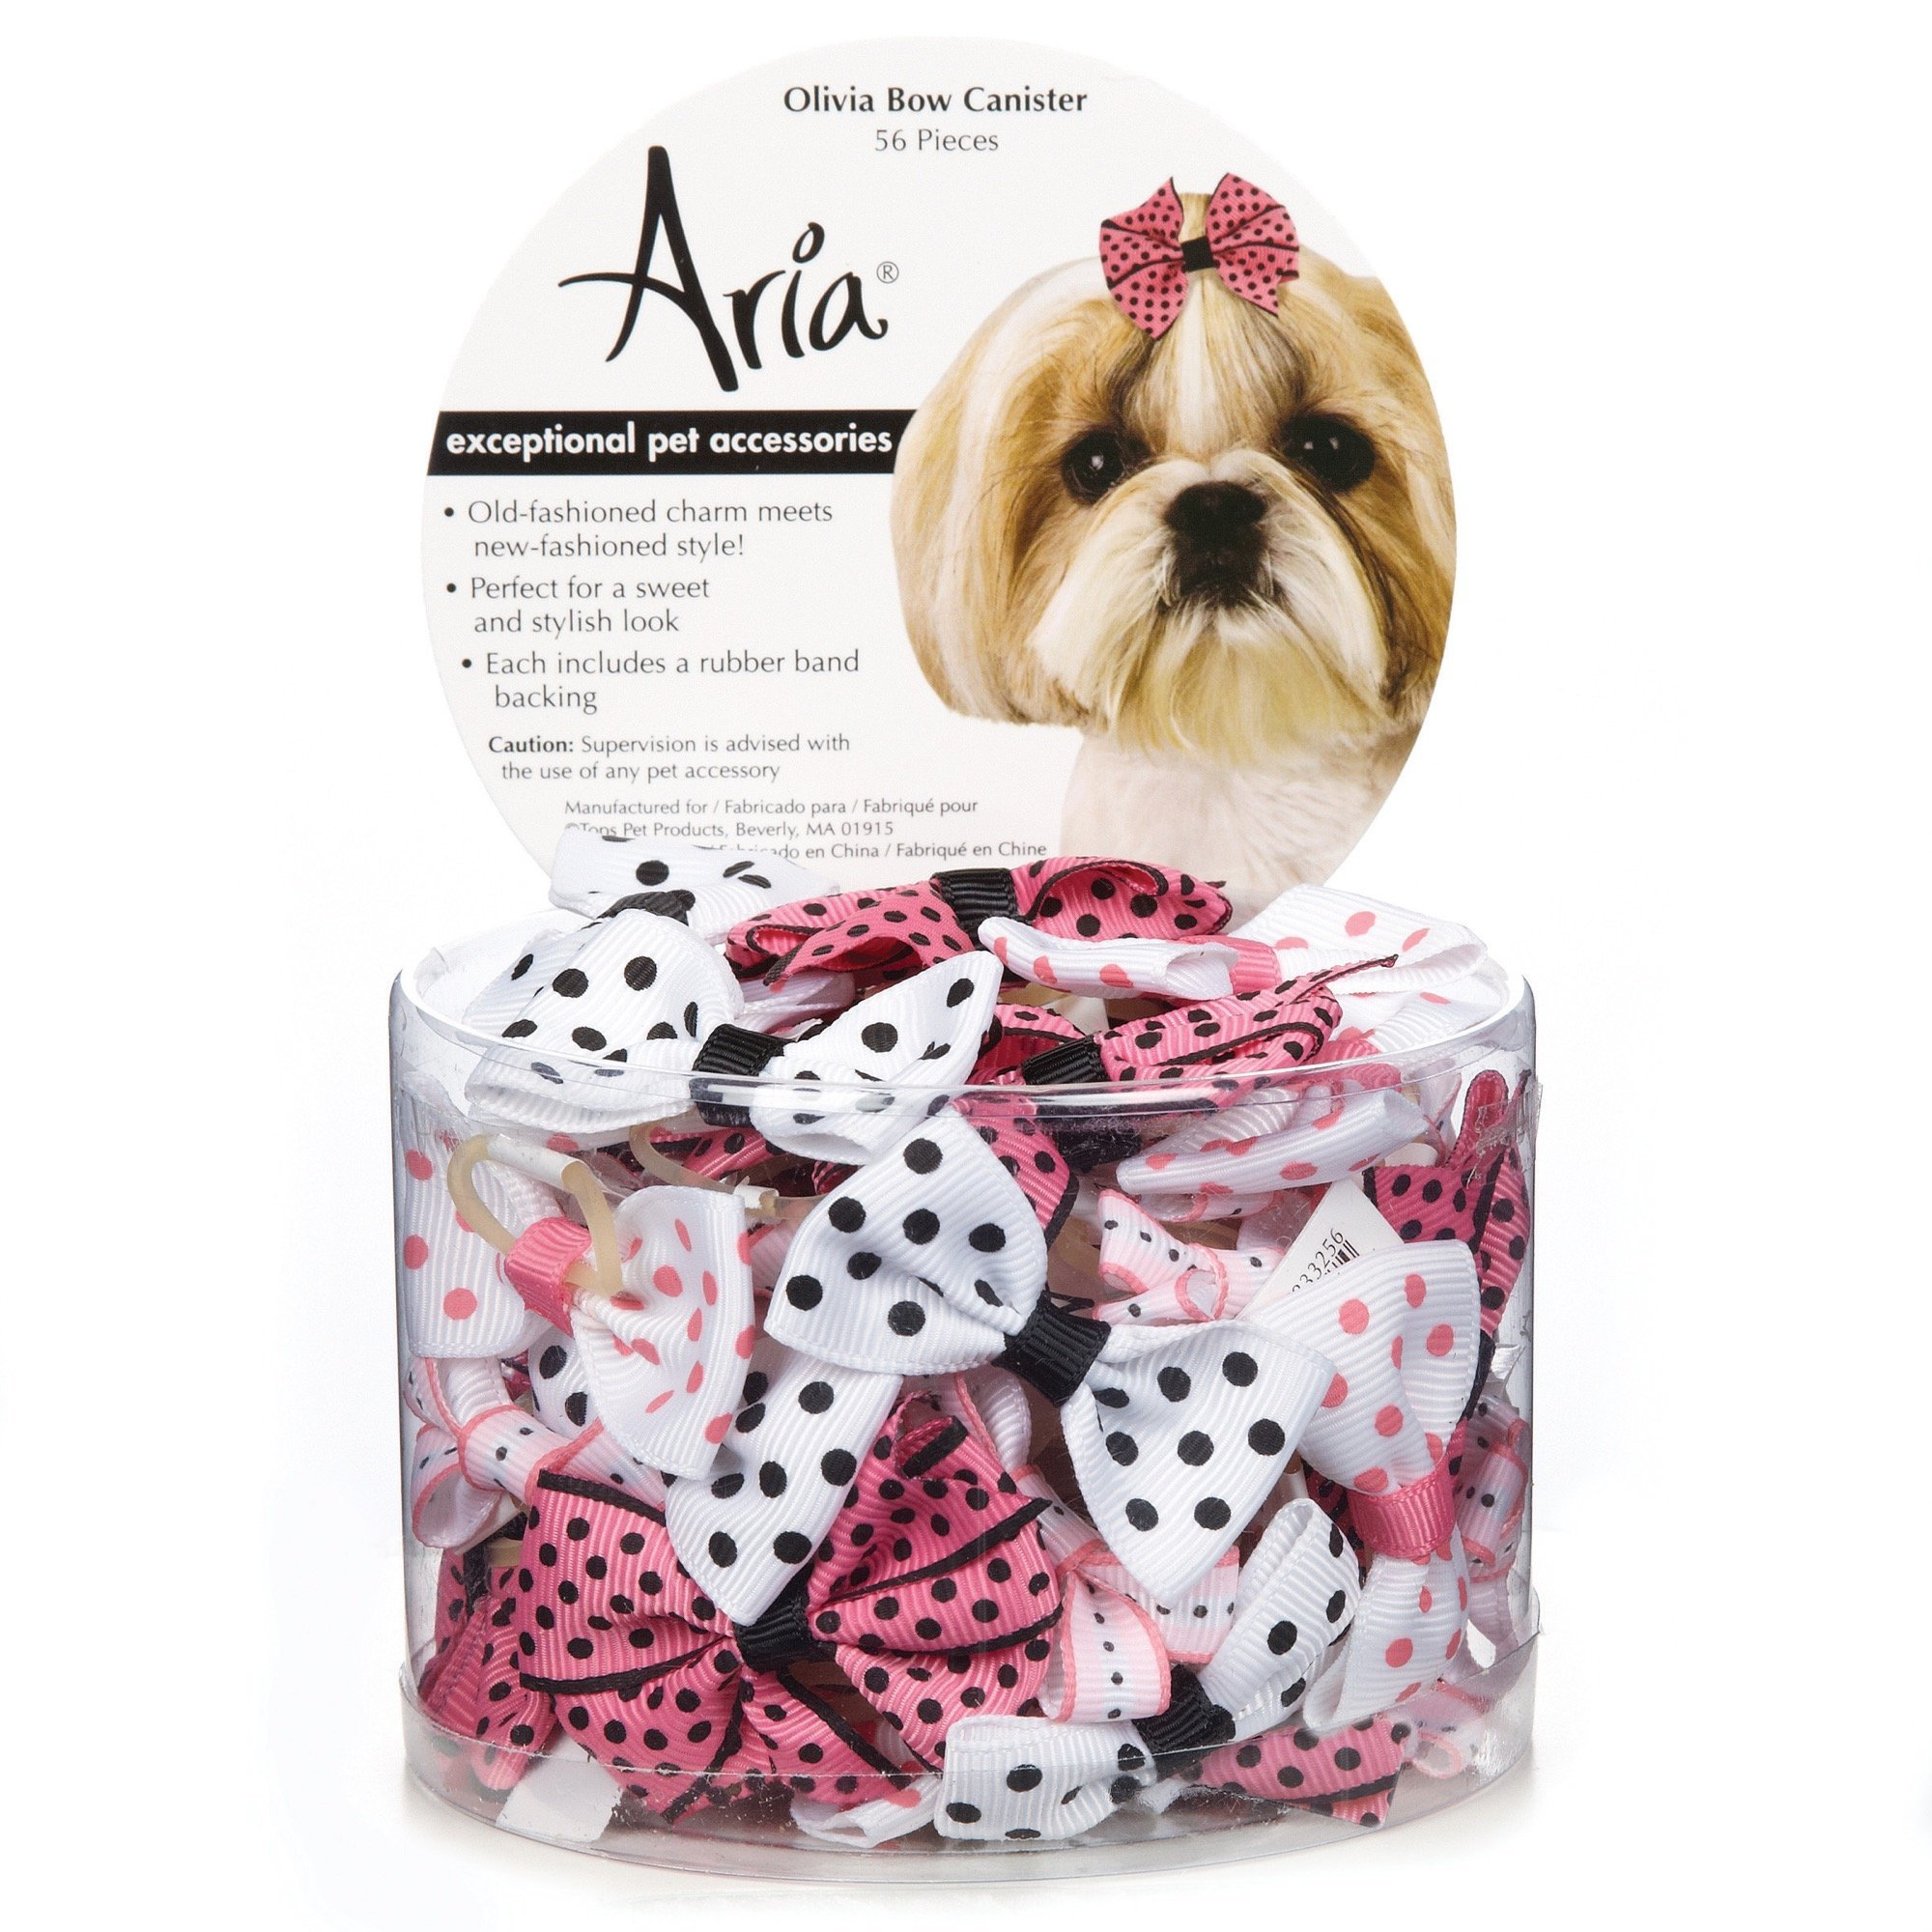 Aria Olivia Bows for Dogs, 56-Piece Canisters by Aria